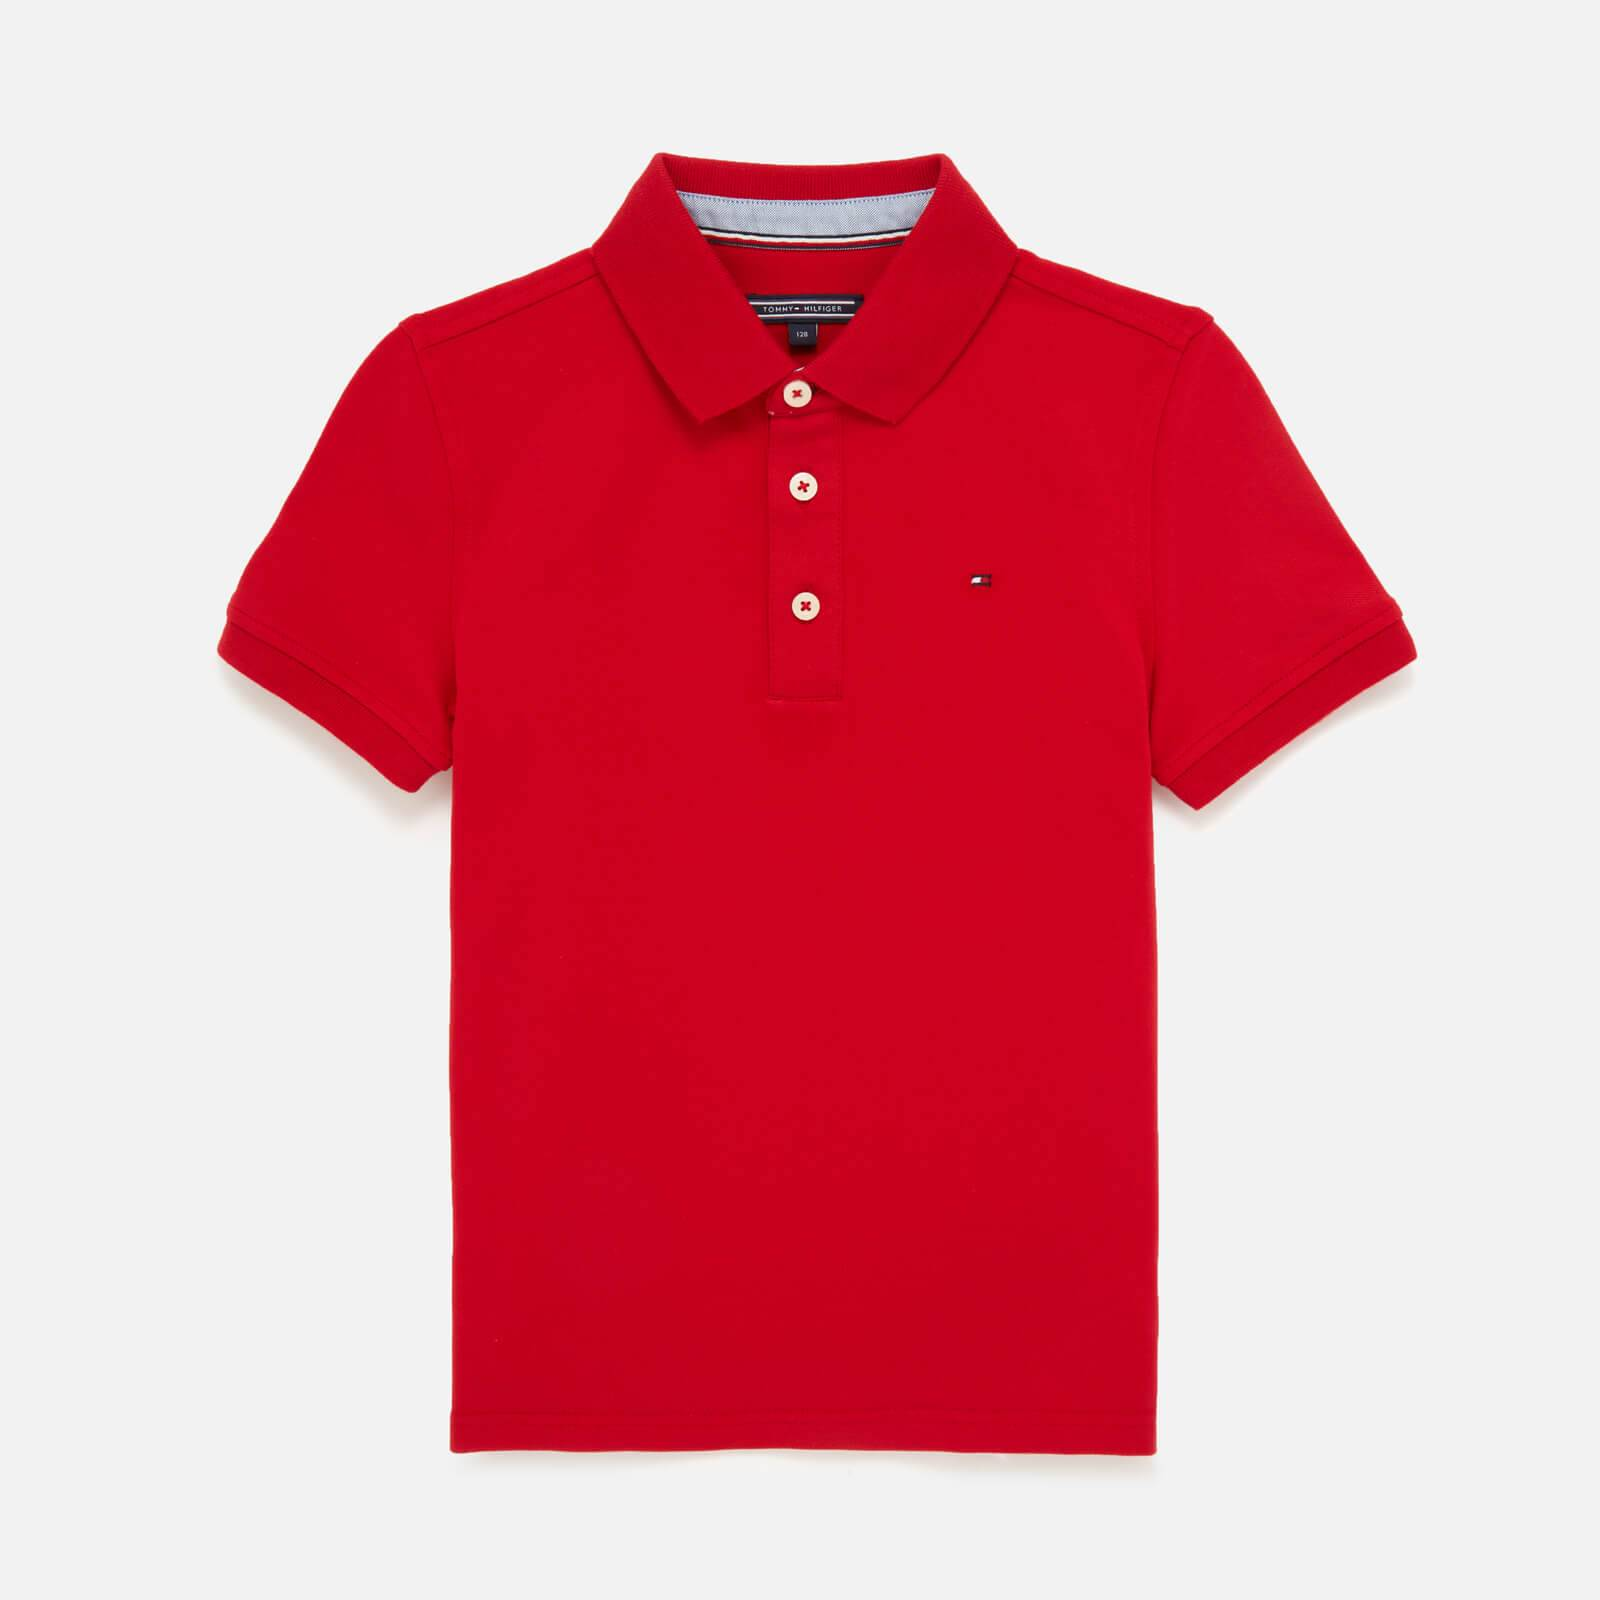 Tommy Kids Boys' Iconic Polo Shirt - Apple Red - 7 Years